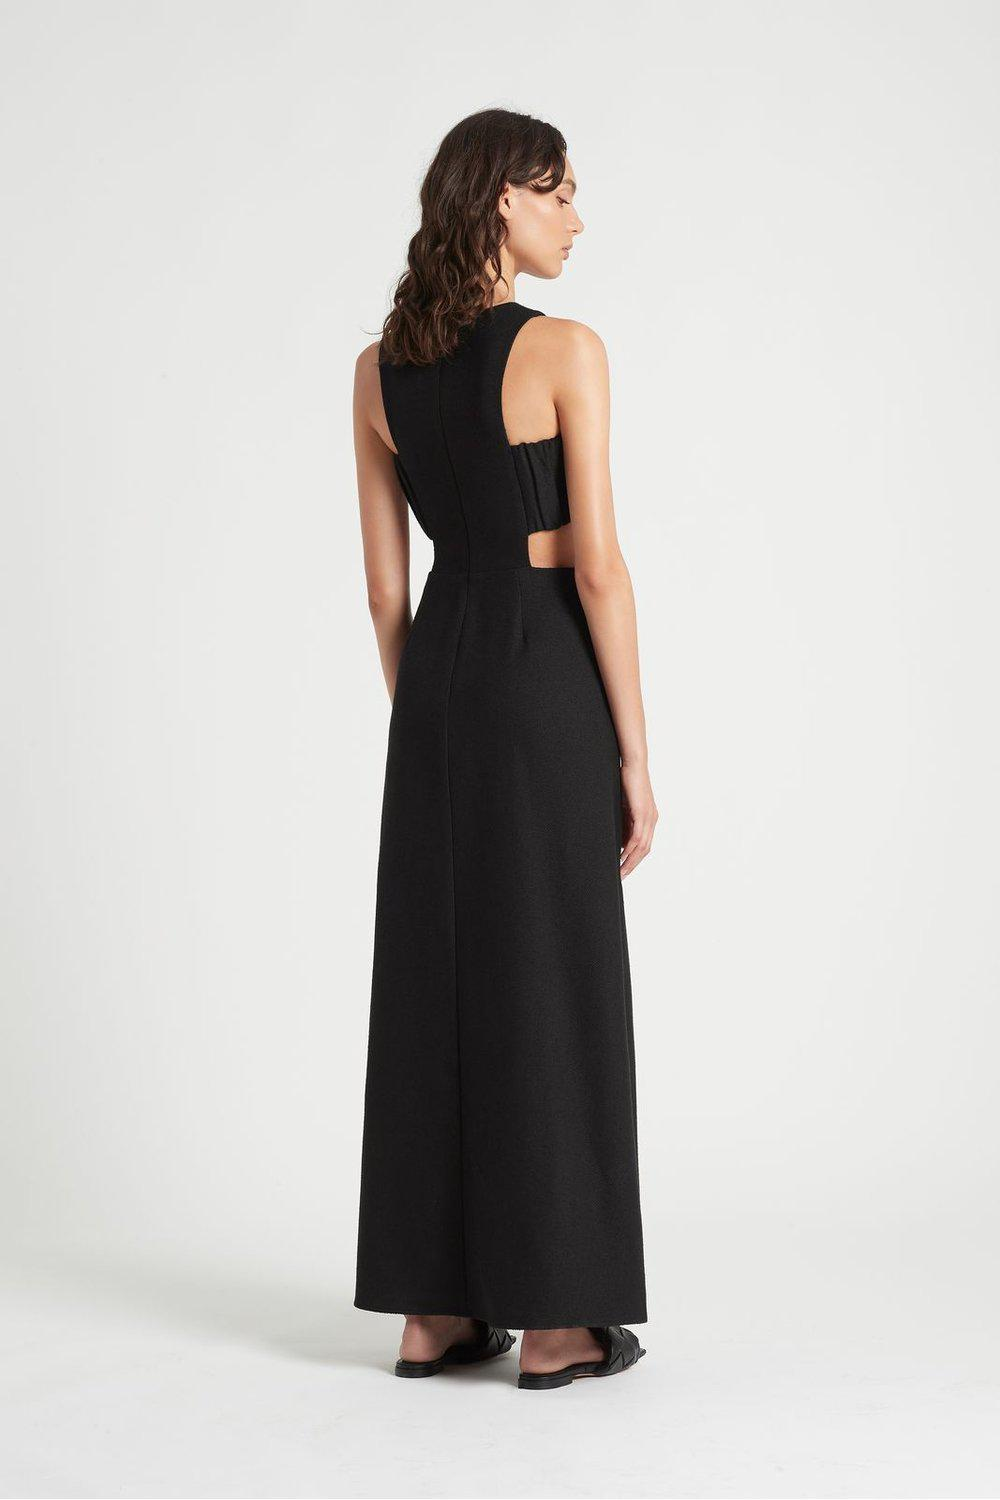 Yves Cut Out Gown / Black | SIR | Mad About The Boy